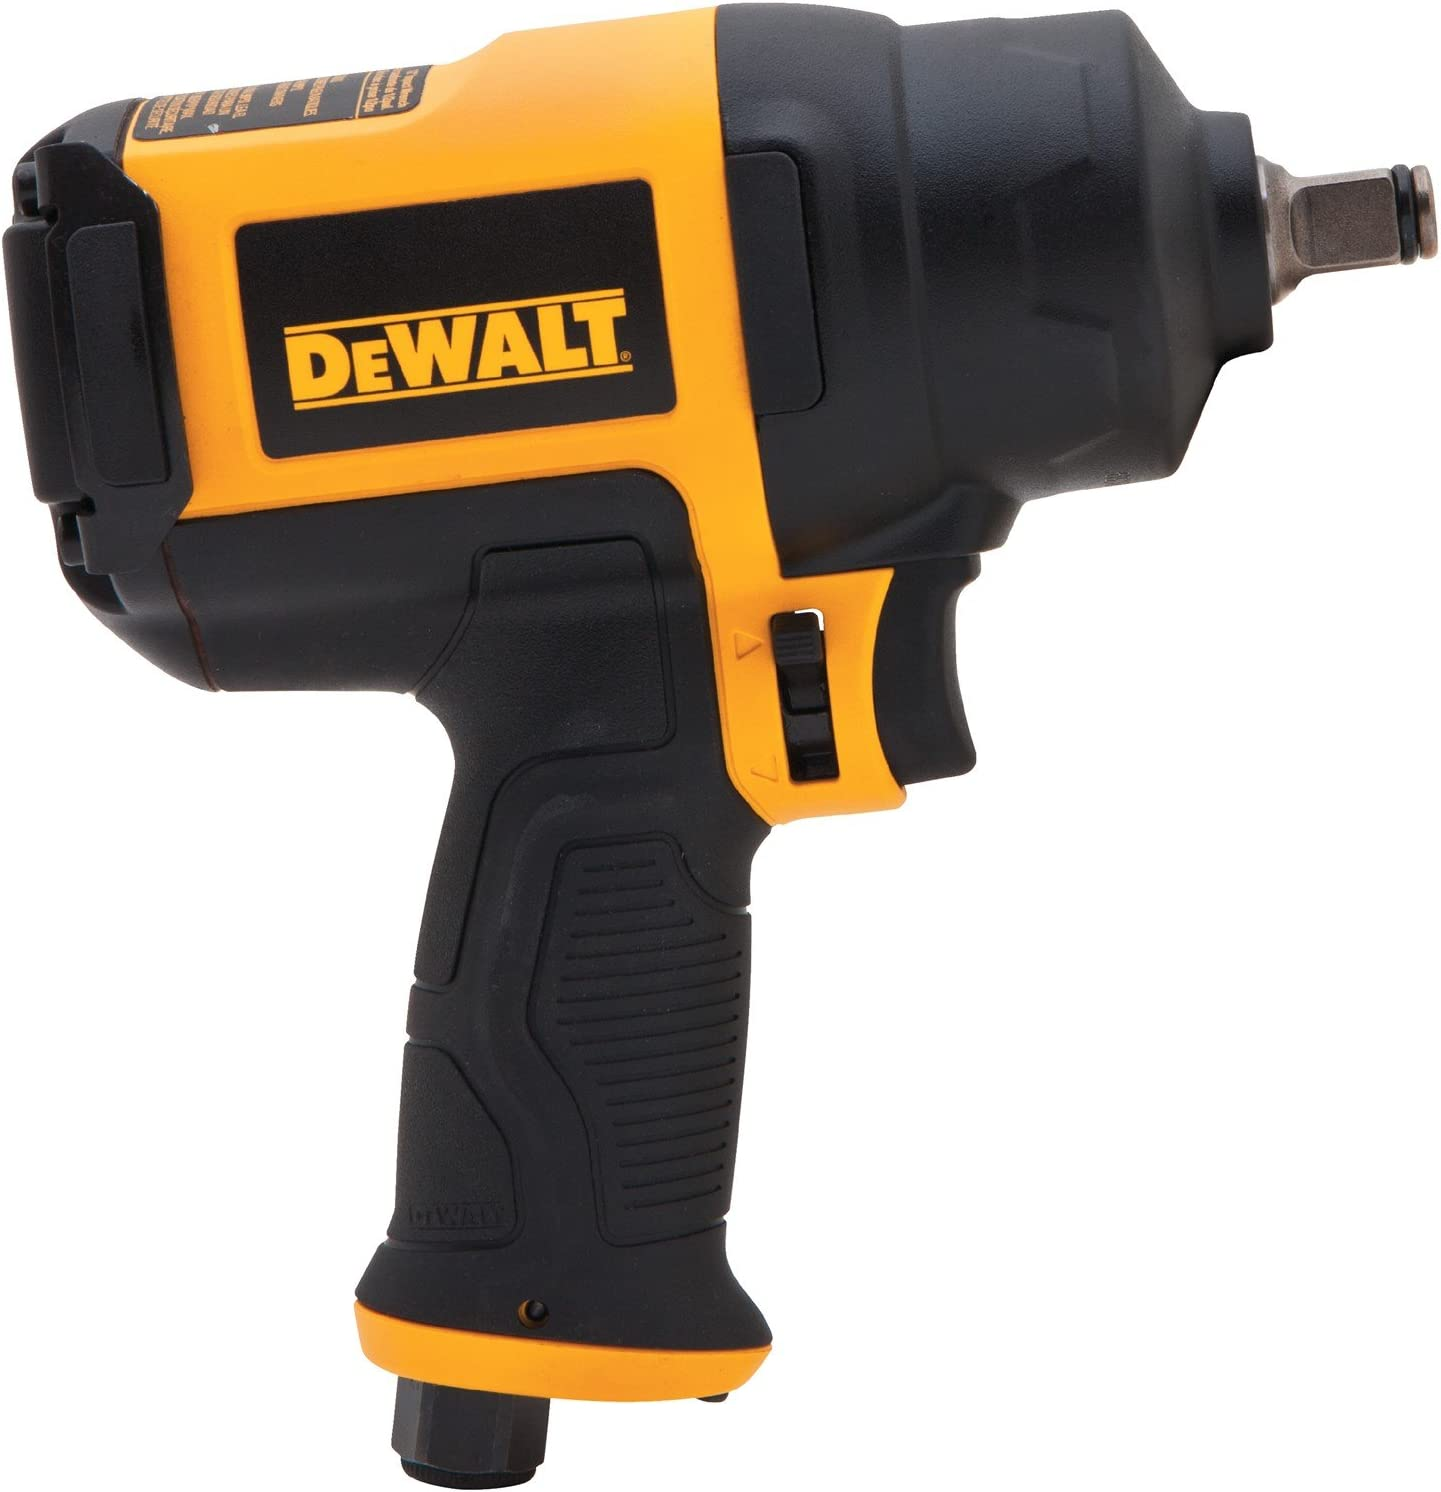 best air impact wrench: DEWALT DWMT70773L